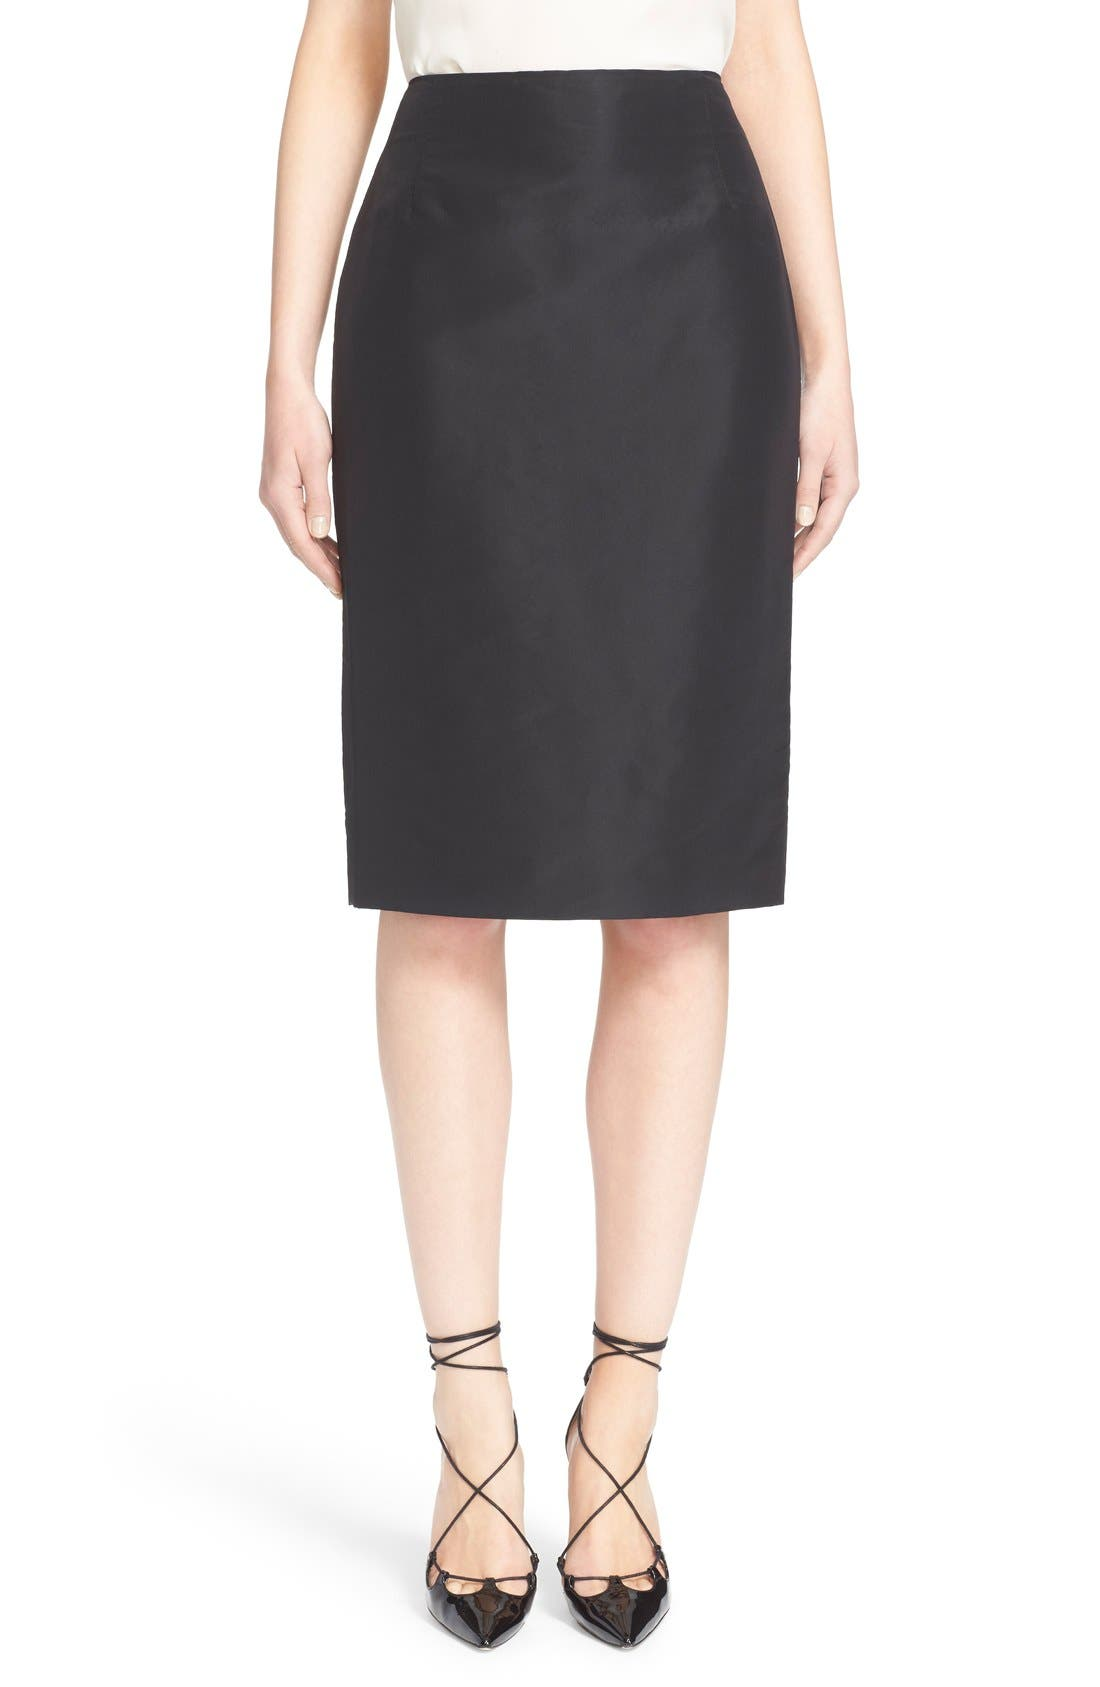 Carolina Herrera Silk Pencil Skirt